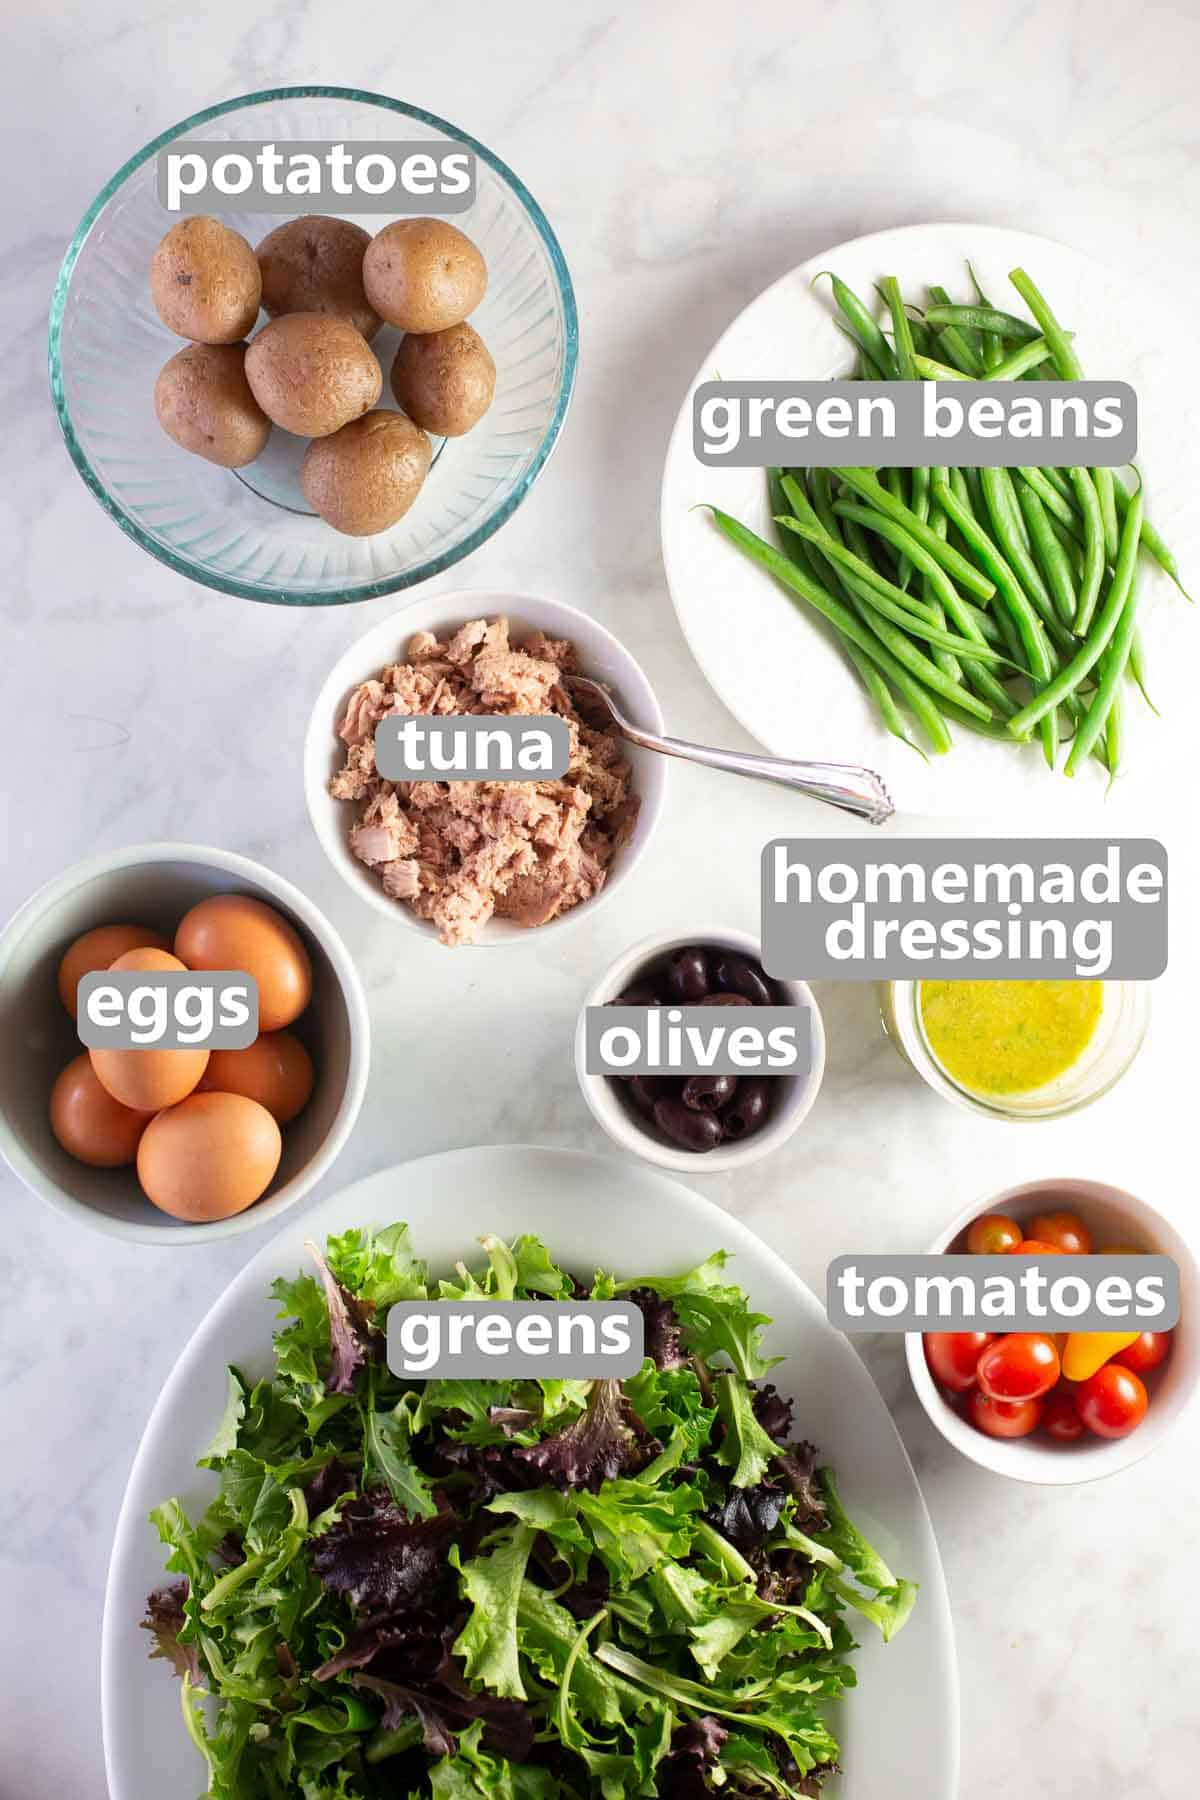 Salad nicoise ingredients - potatoes, green beans, tuna, eggs, olives, homemade dressing, spring greens and tomatoes